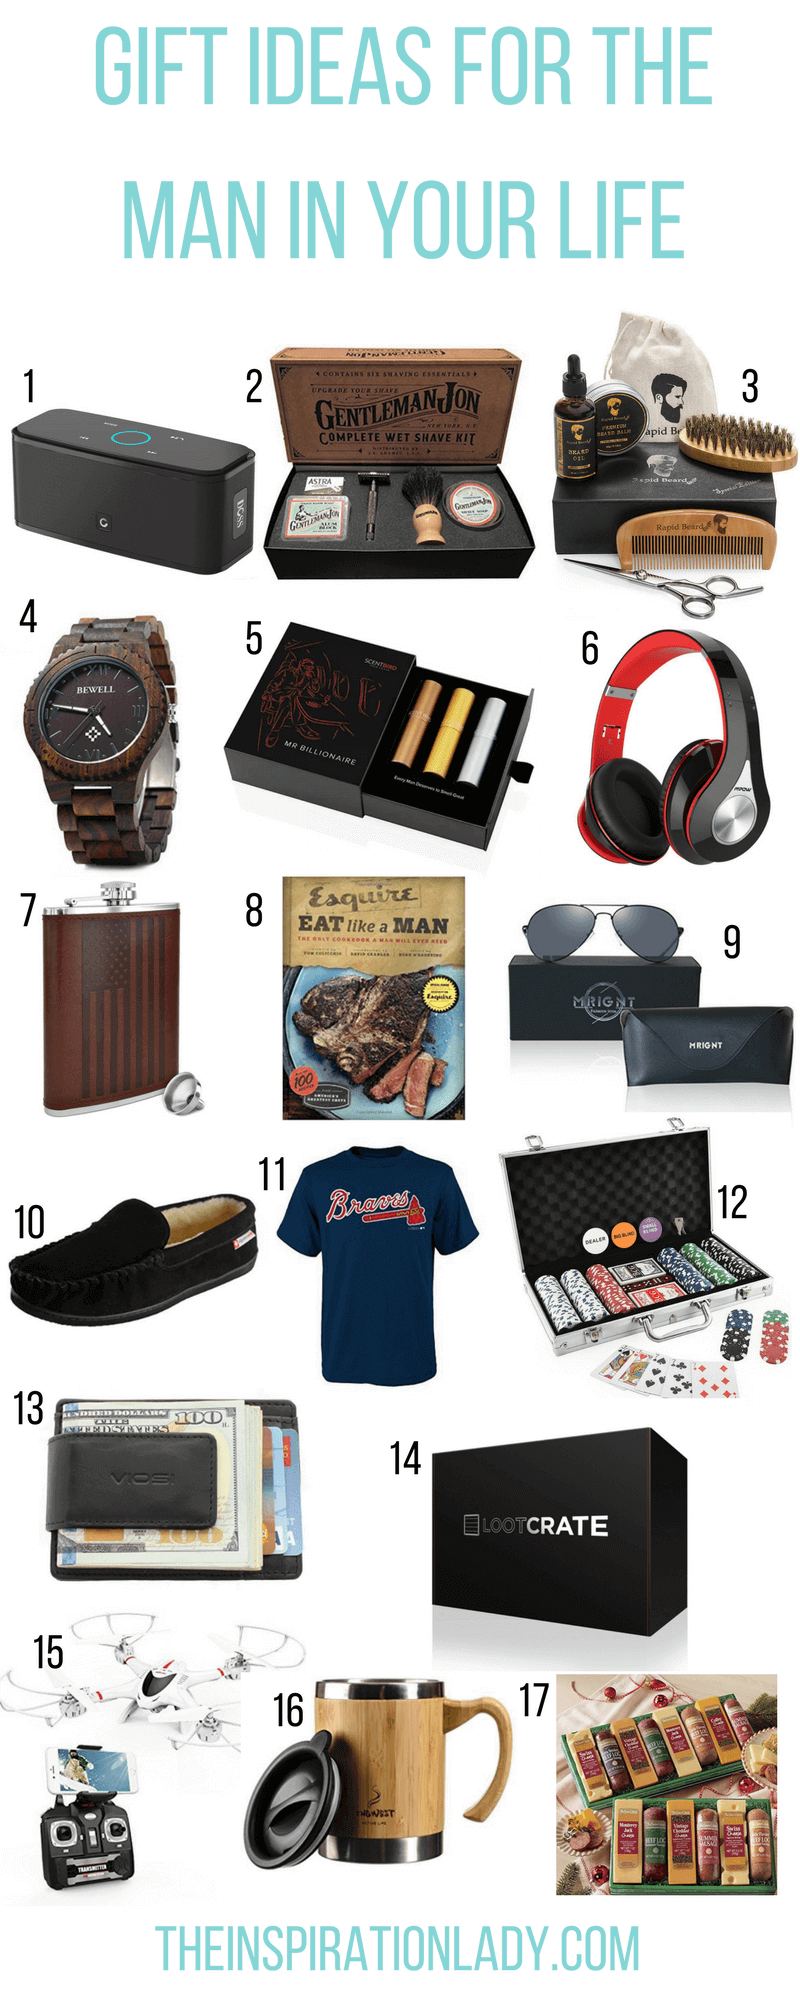 21 Affordable Gift Ideas For Him The Inspiration Lady